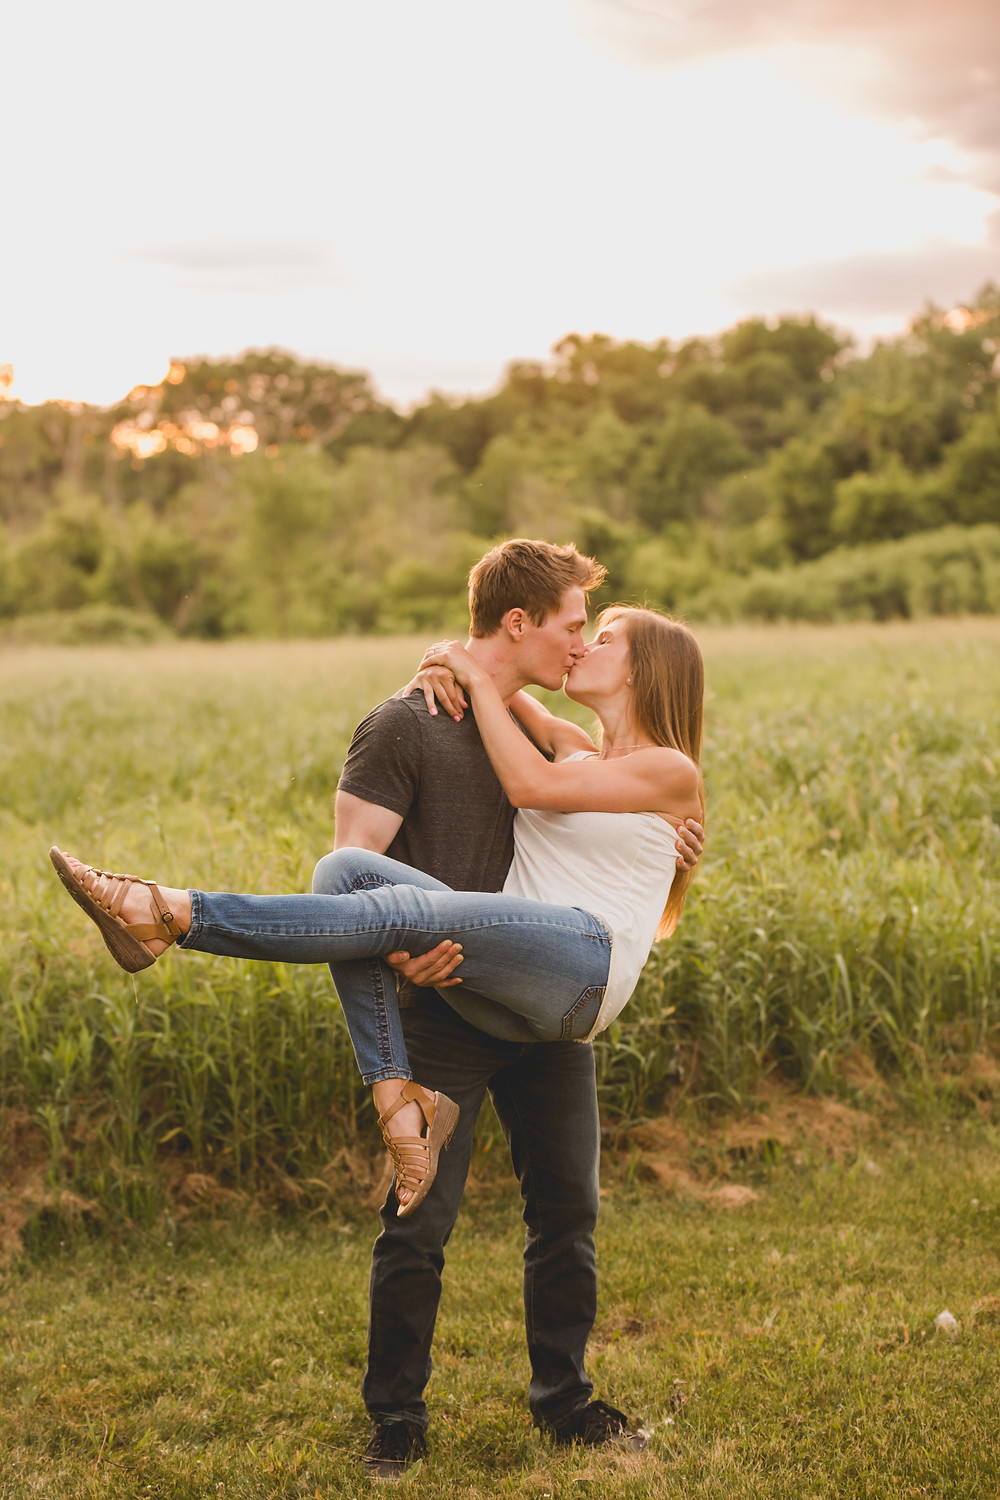 Composed and Exposed Photography, Sunset engagement session, fun engagement poses